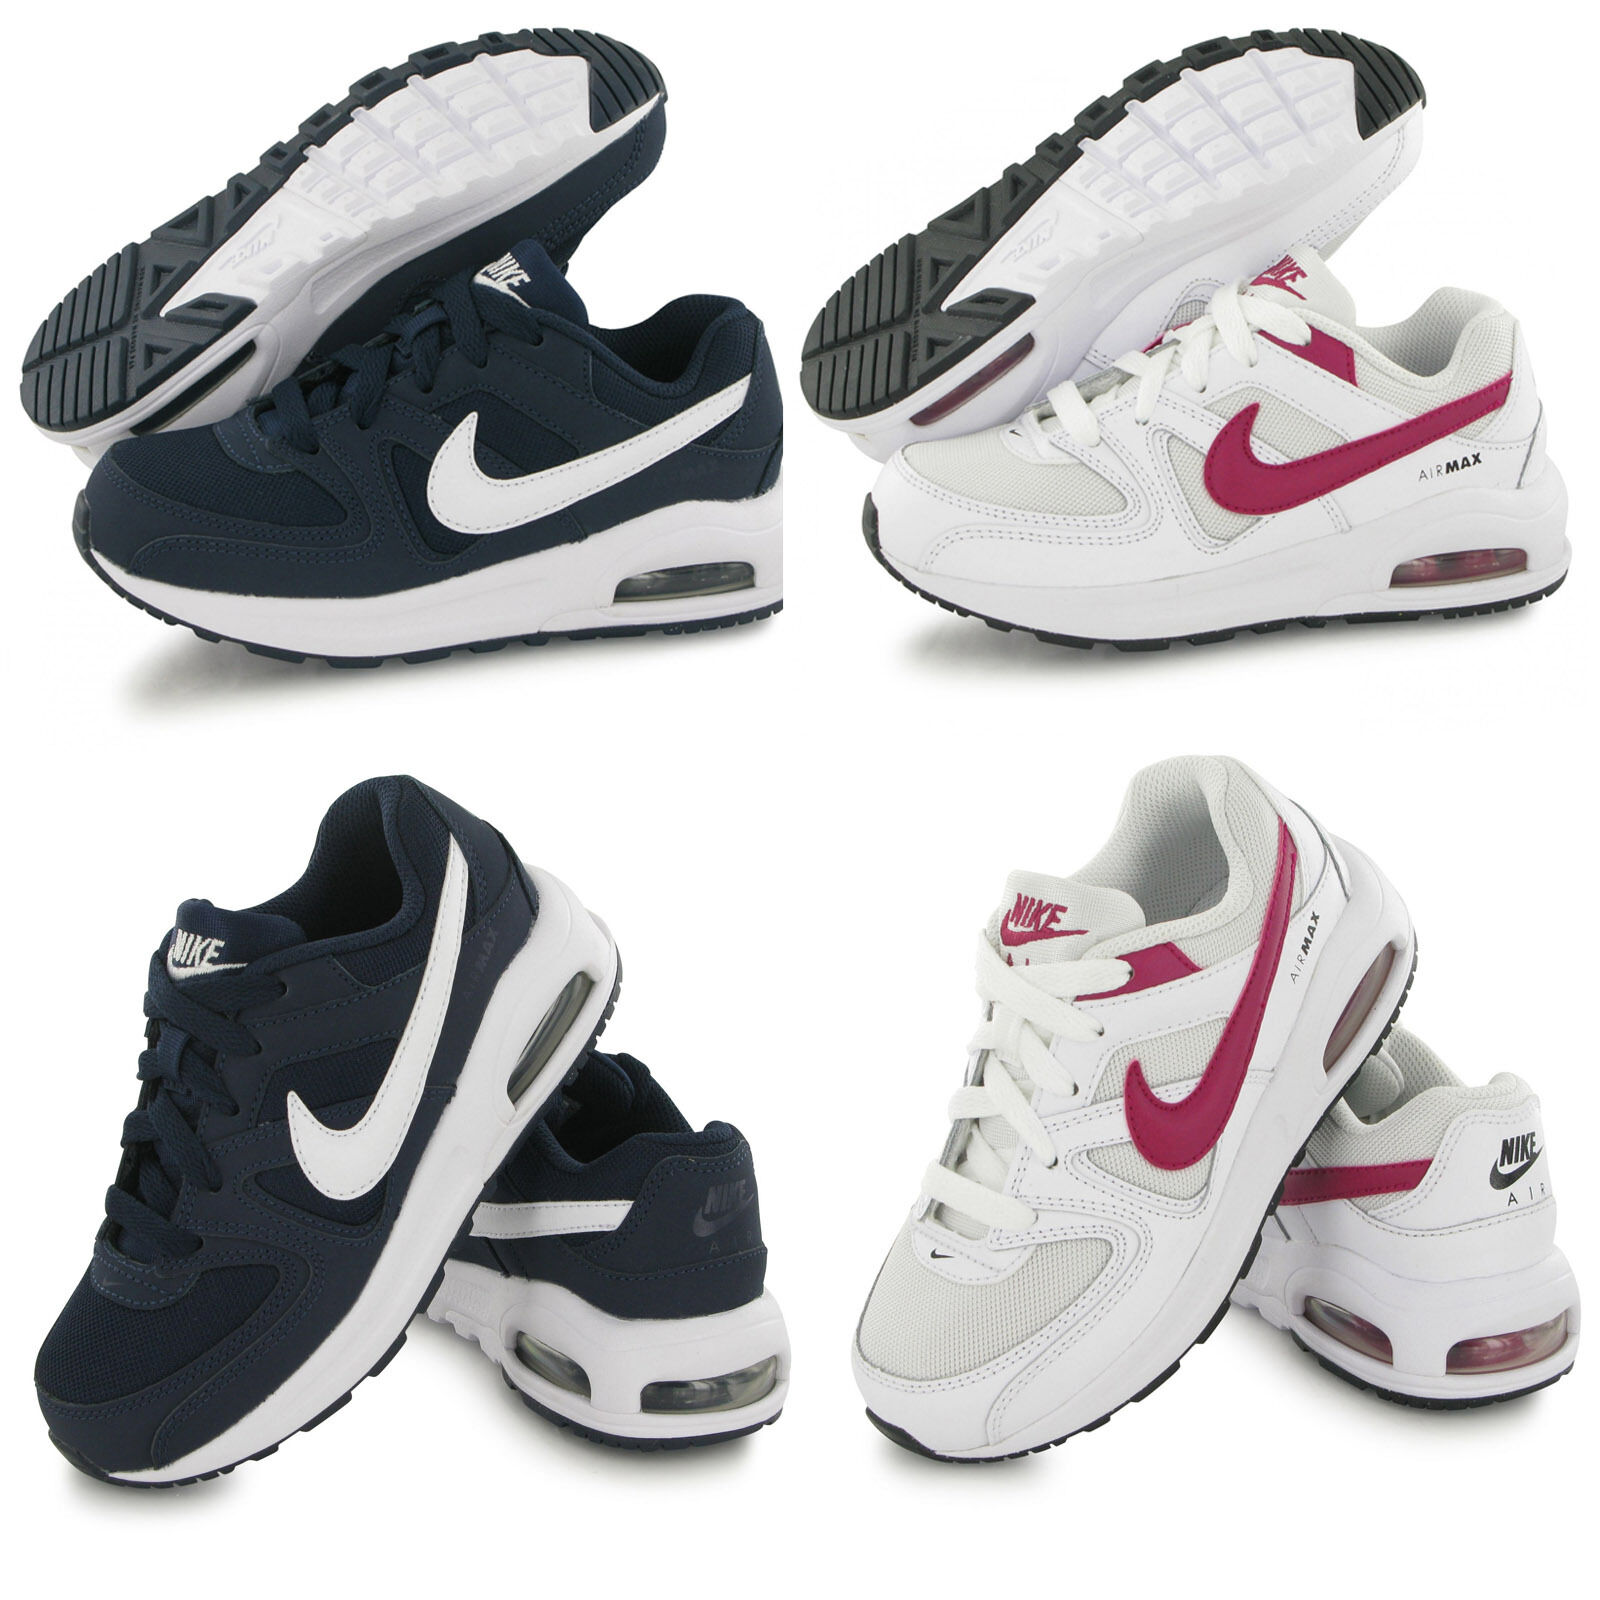 "Nike Air Max Command ΔΡρμάτινα Παιδικά Προπονητές Παιδιά ΞšΞΏΟΞ―Ο""σια Παιδικά Σπορ Αθλητικά παπούτσια"